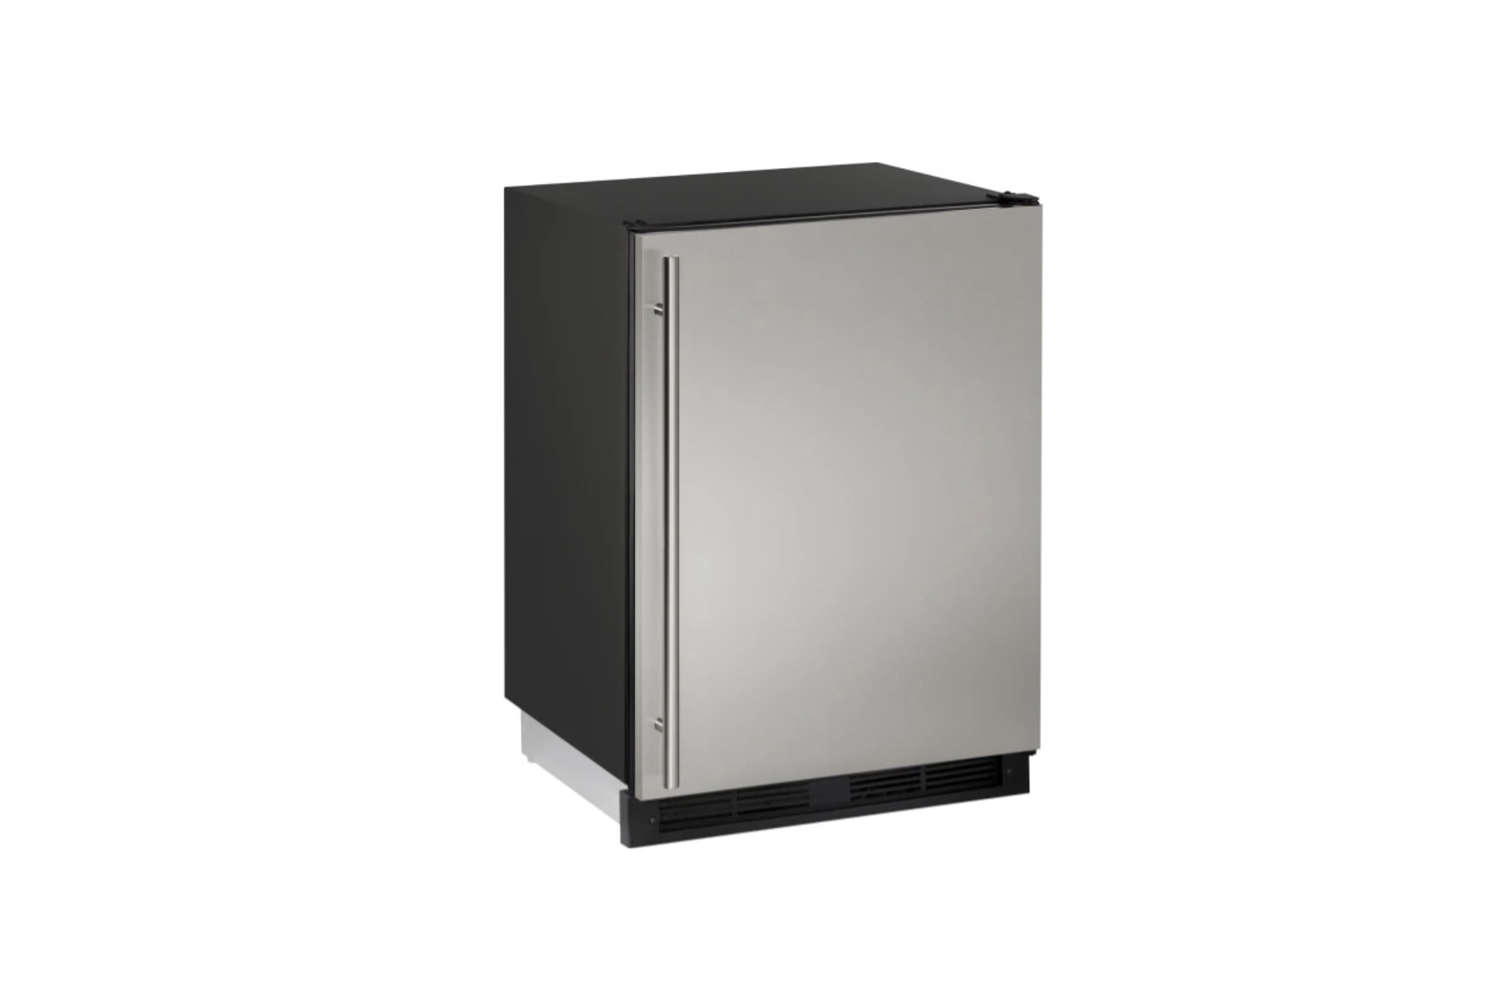 10 Easy Pieces Choosing An Undercounter Refrigerator The Uline Stainless Steel Undercounter Compact Refrigerator (U\1\2\24RS00B) is \$\1,949 at Goedeker&#8\2\17;s.